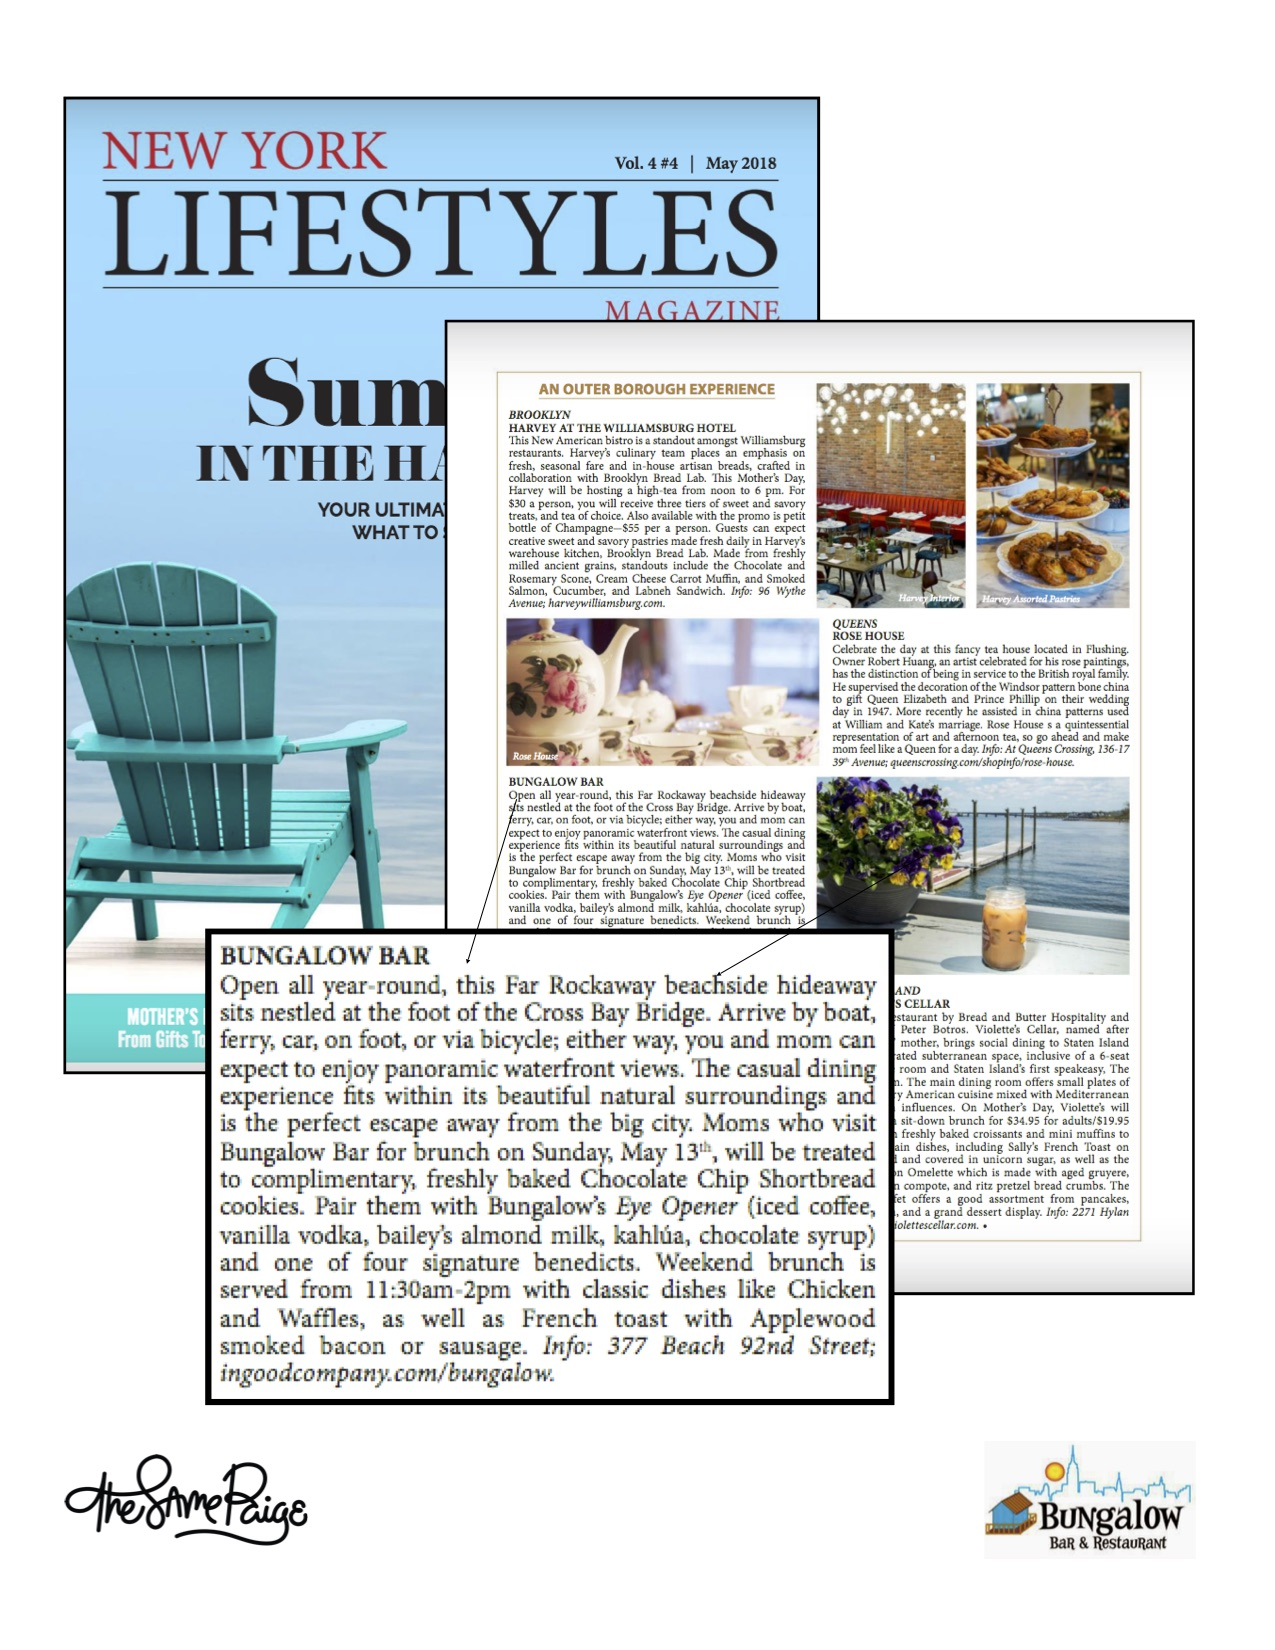 NYLifestyles_Bungalow_May'18 copy.jpg